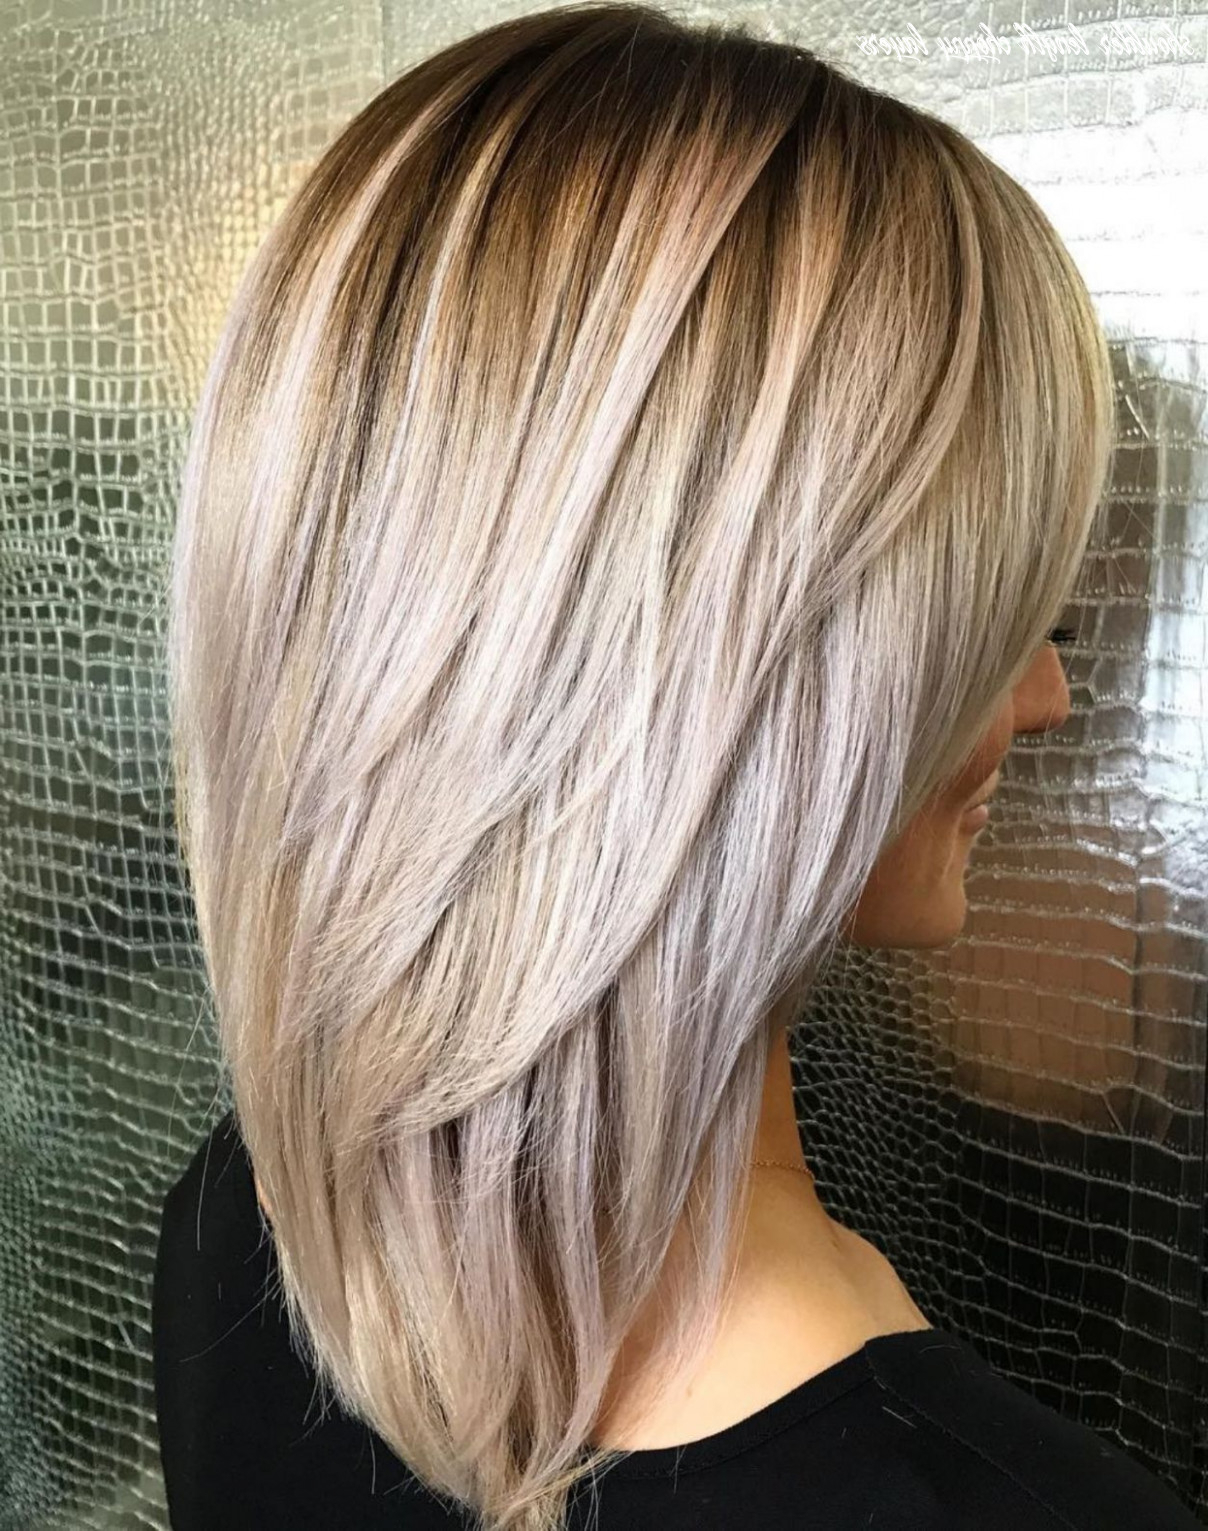 Current Choppy Layers Hairstyles With Face Framing With 12 Shoulder Length Choppy Layers – Undercut Hairstyle (View 17 of 20)